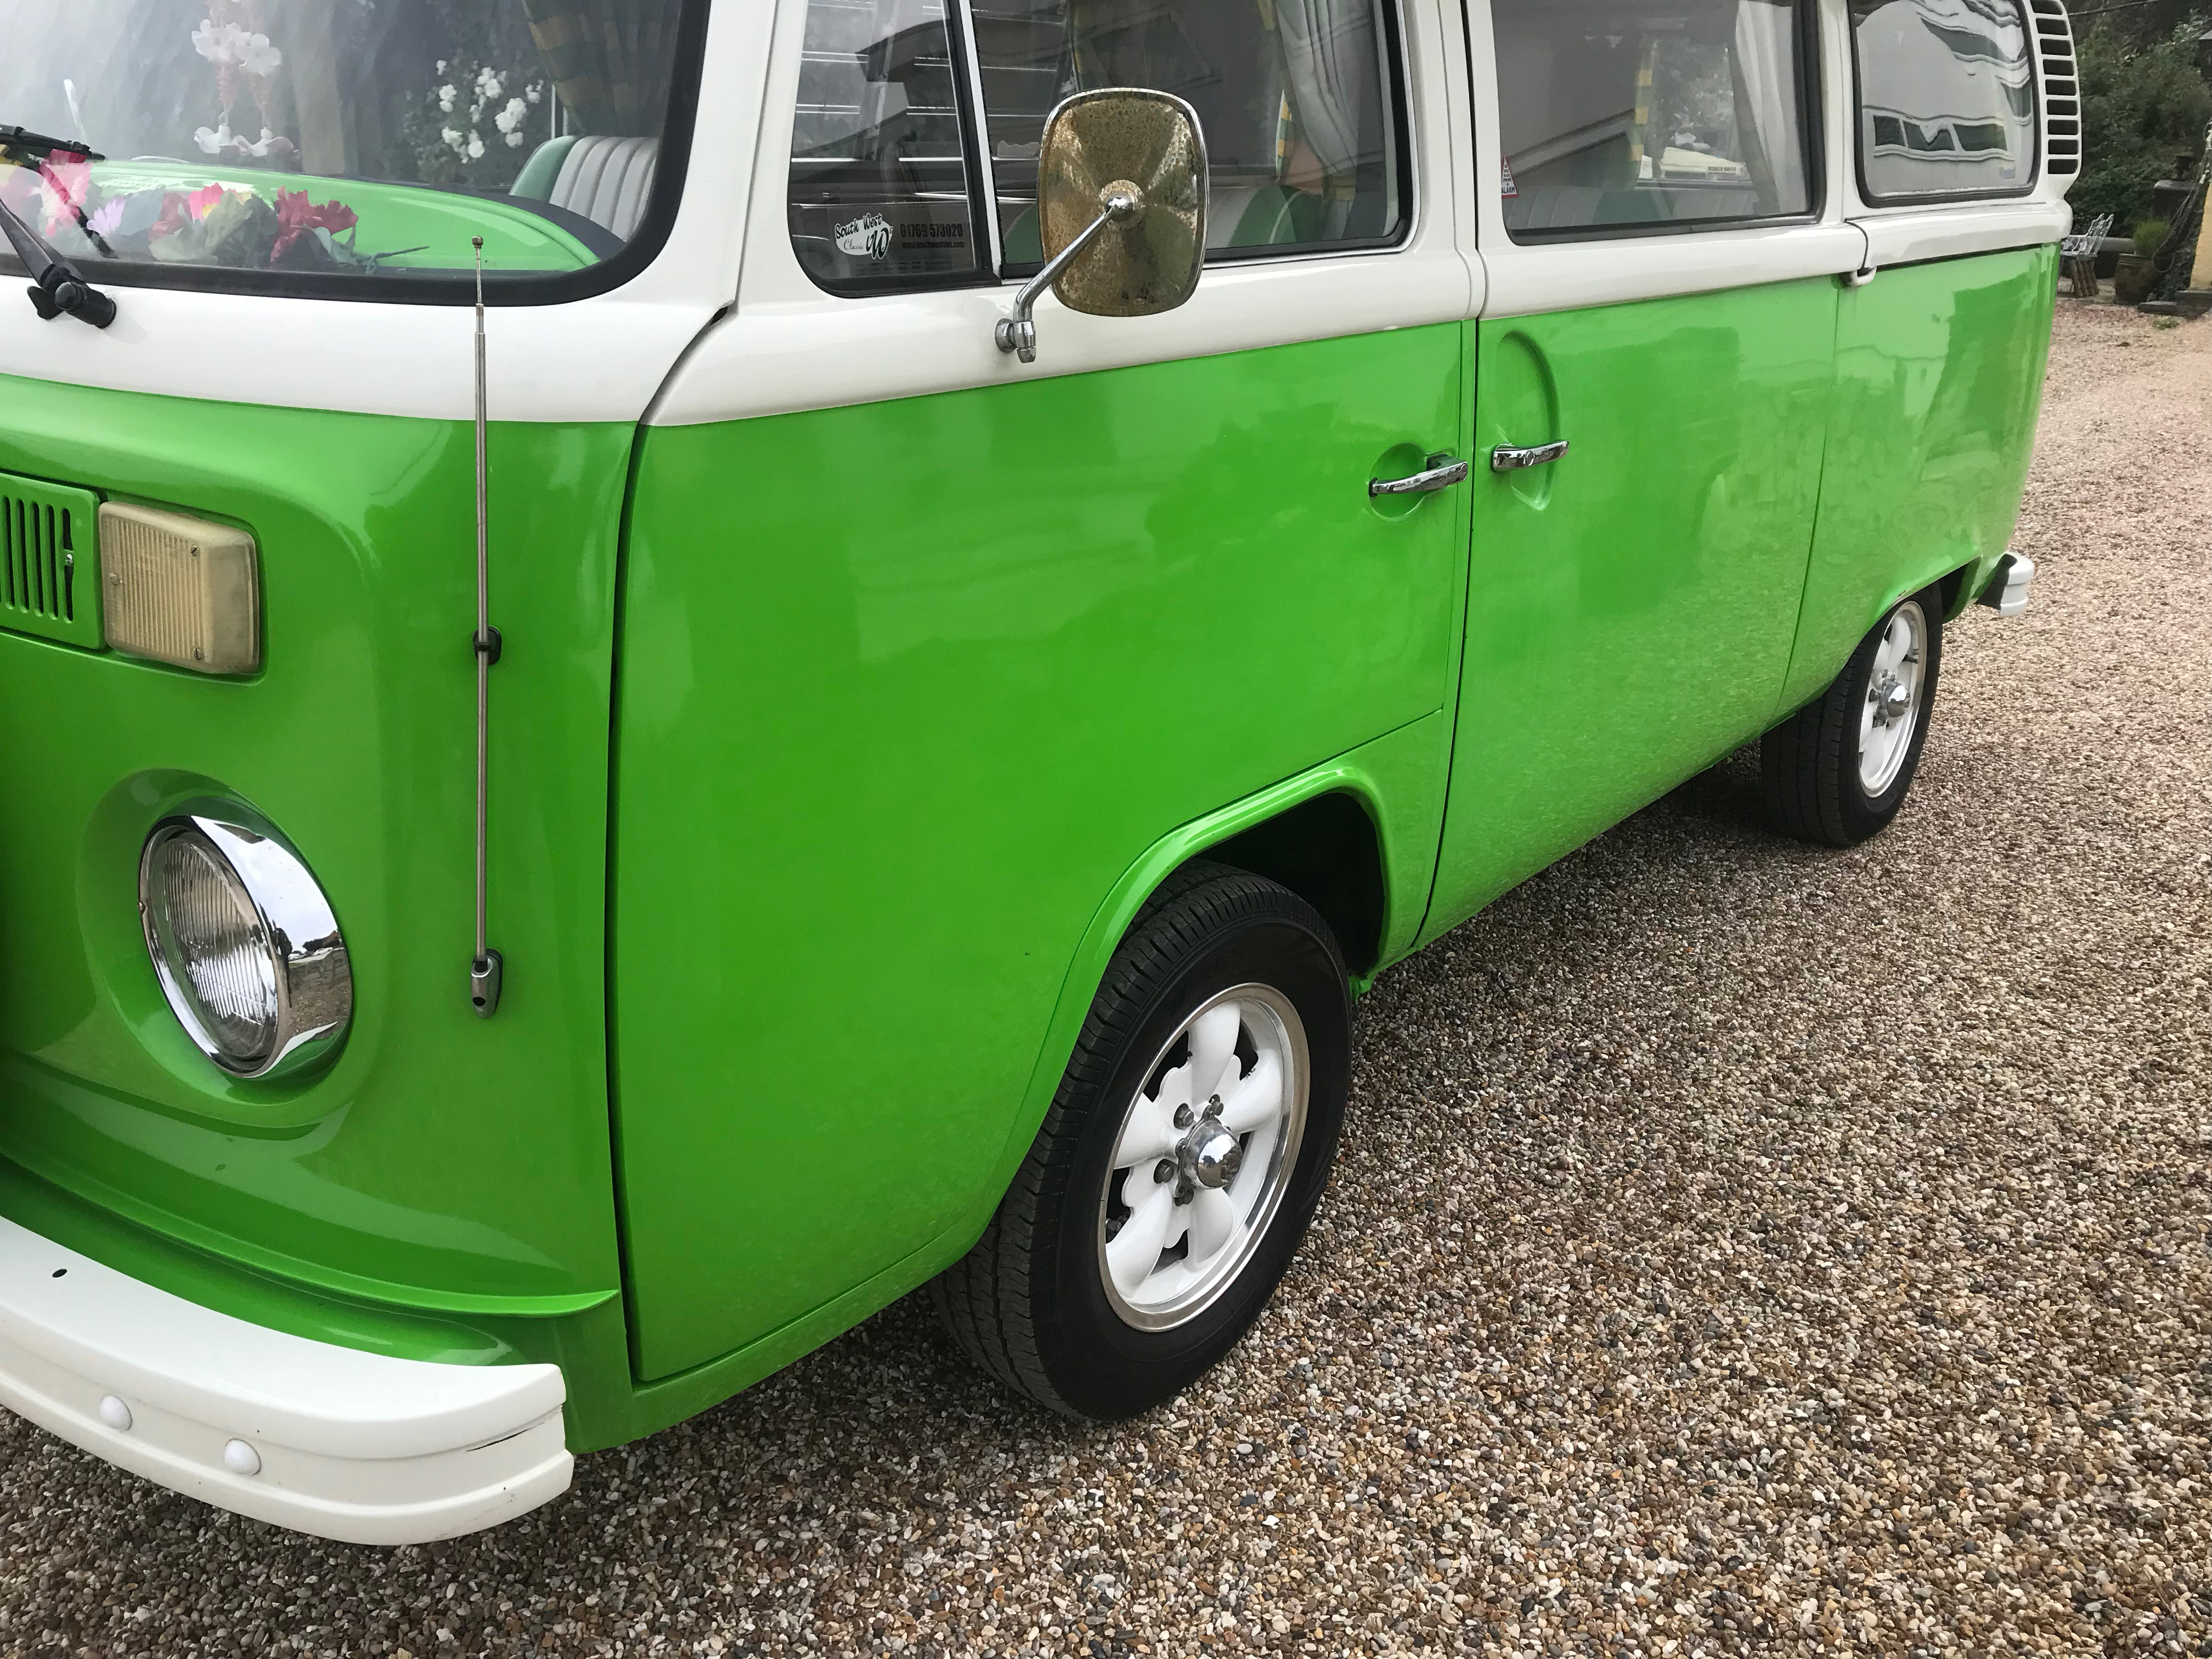 vw-camper-vans-for-sale-in-London